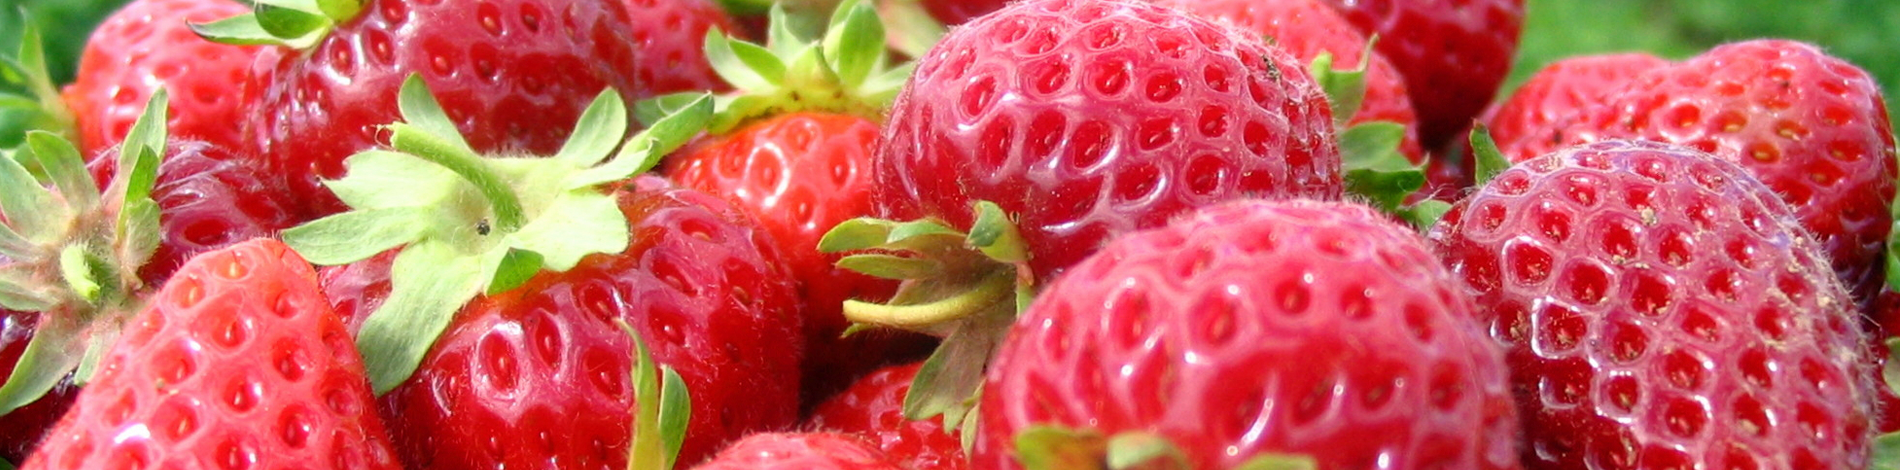 North Carolina Strawberry Farms, Strawberry Recipes, and Strawberry Grower Information